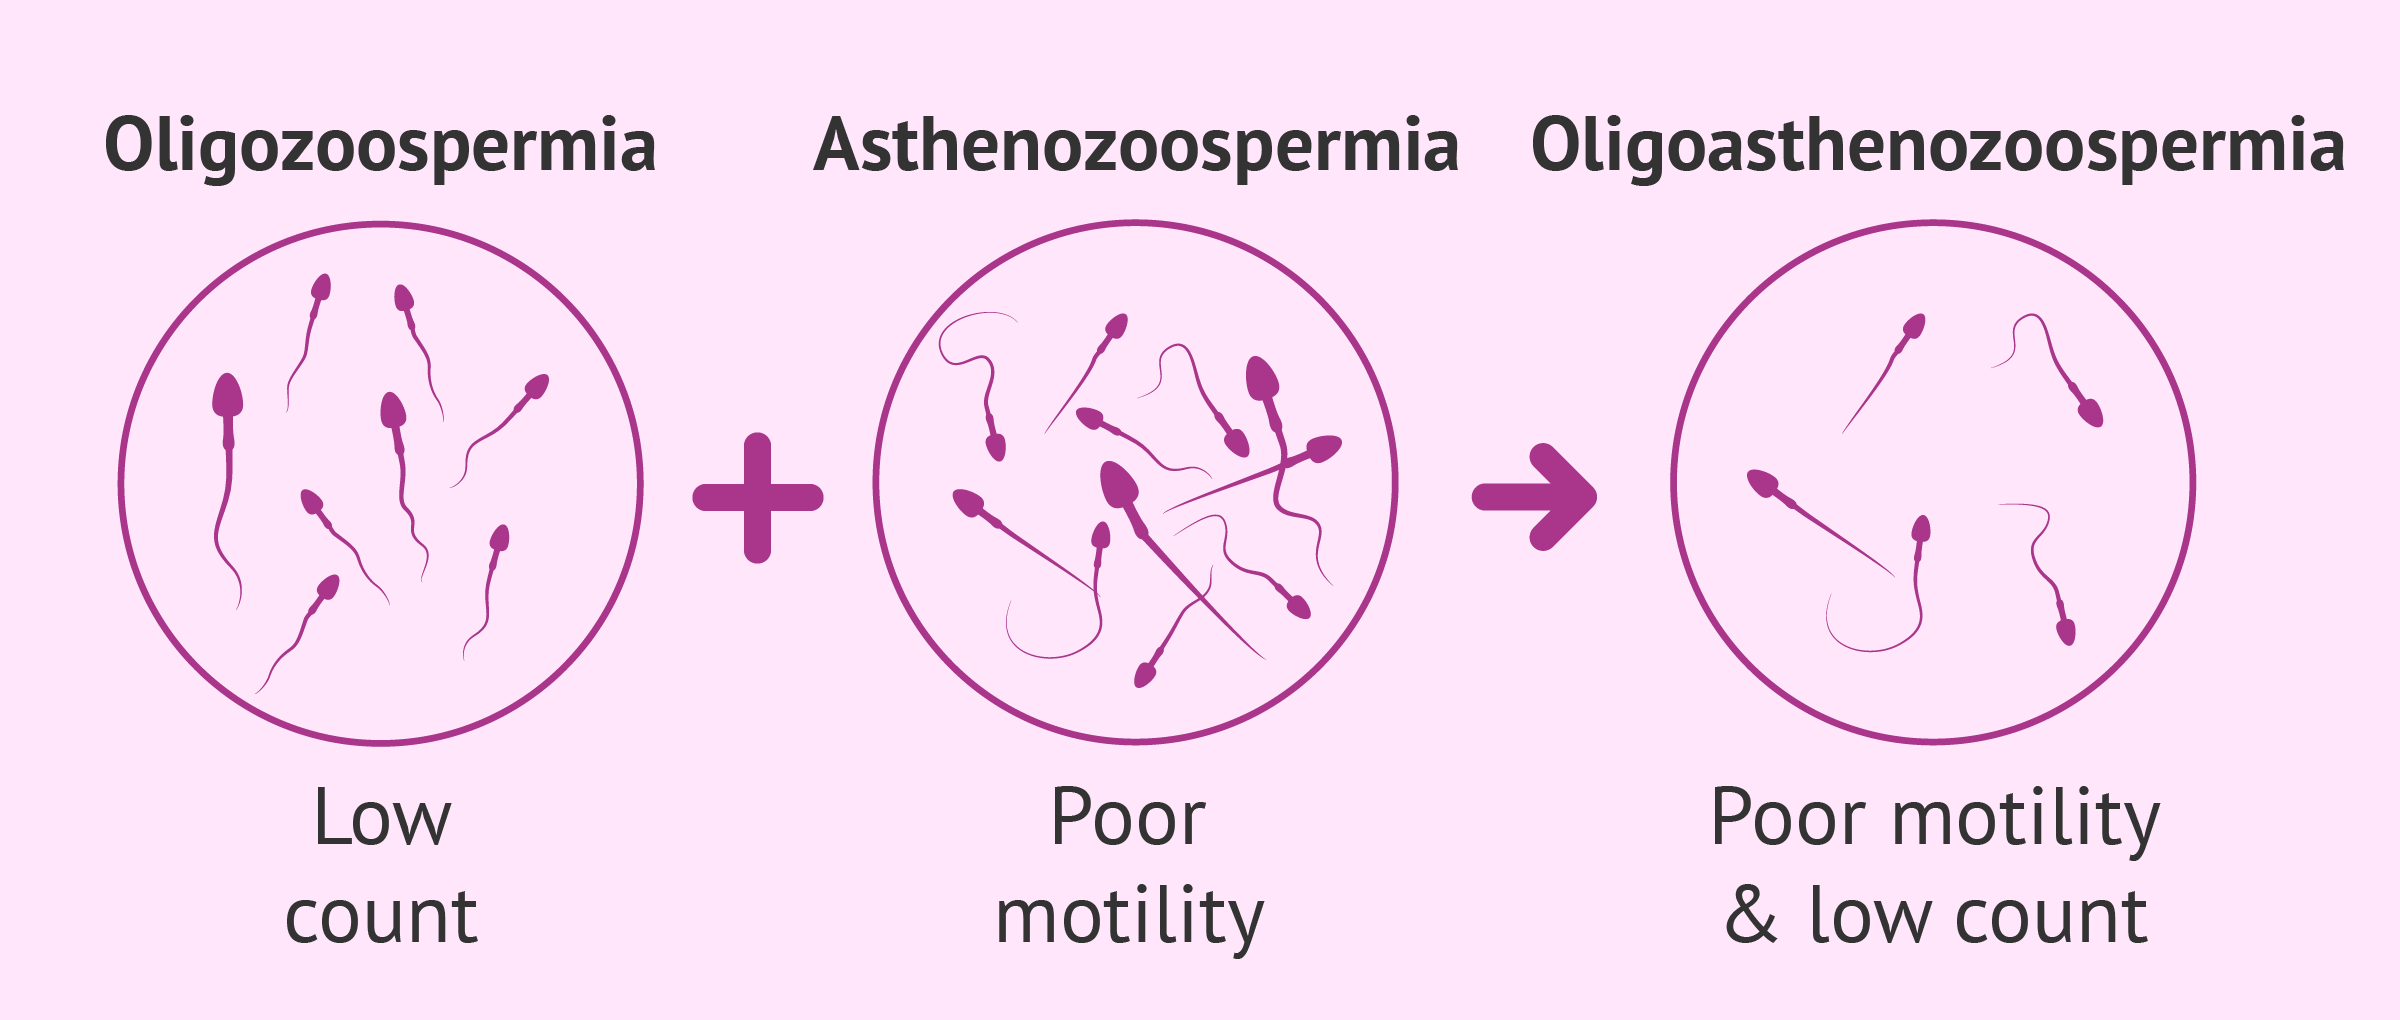 Diagnosis of oligoasthenozoospermia